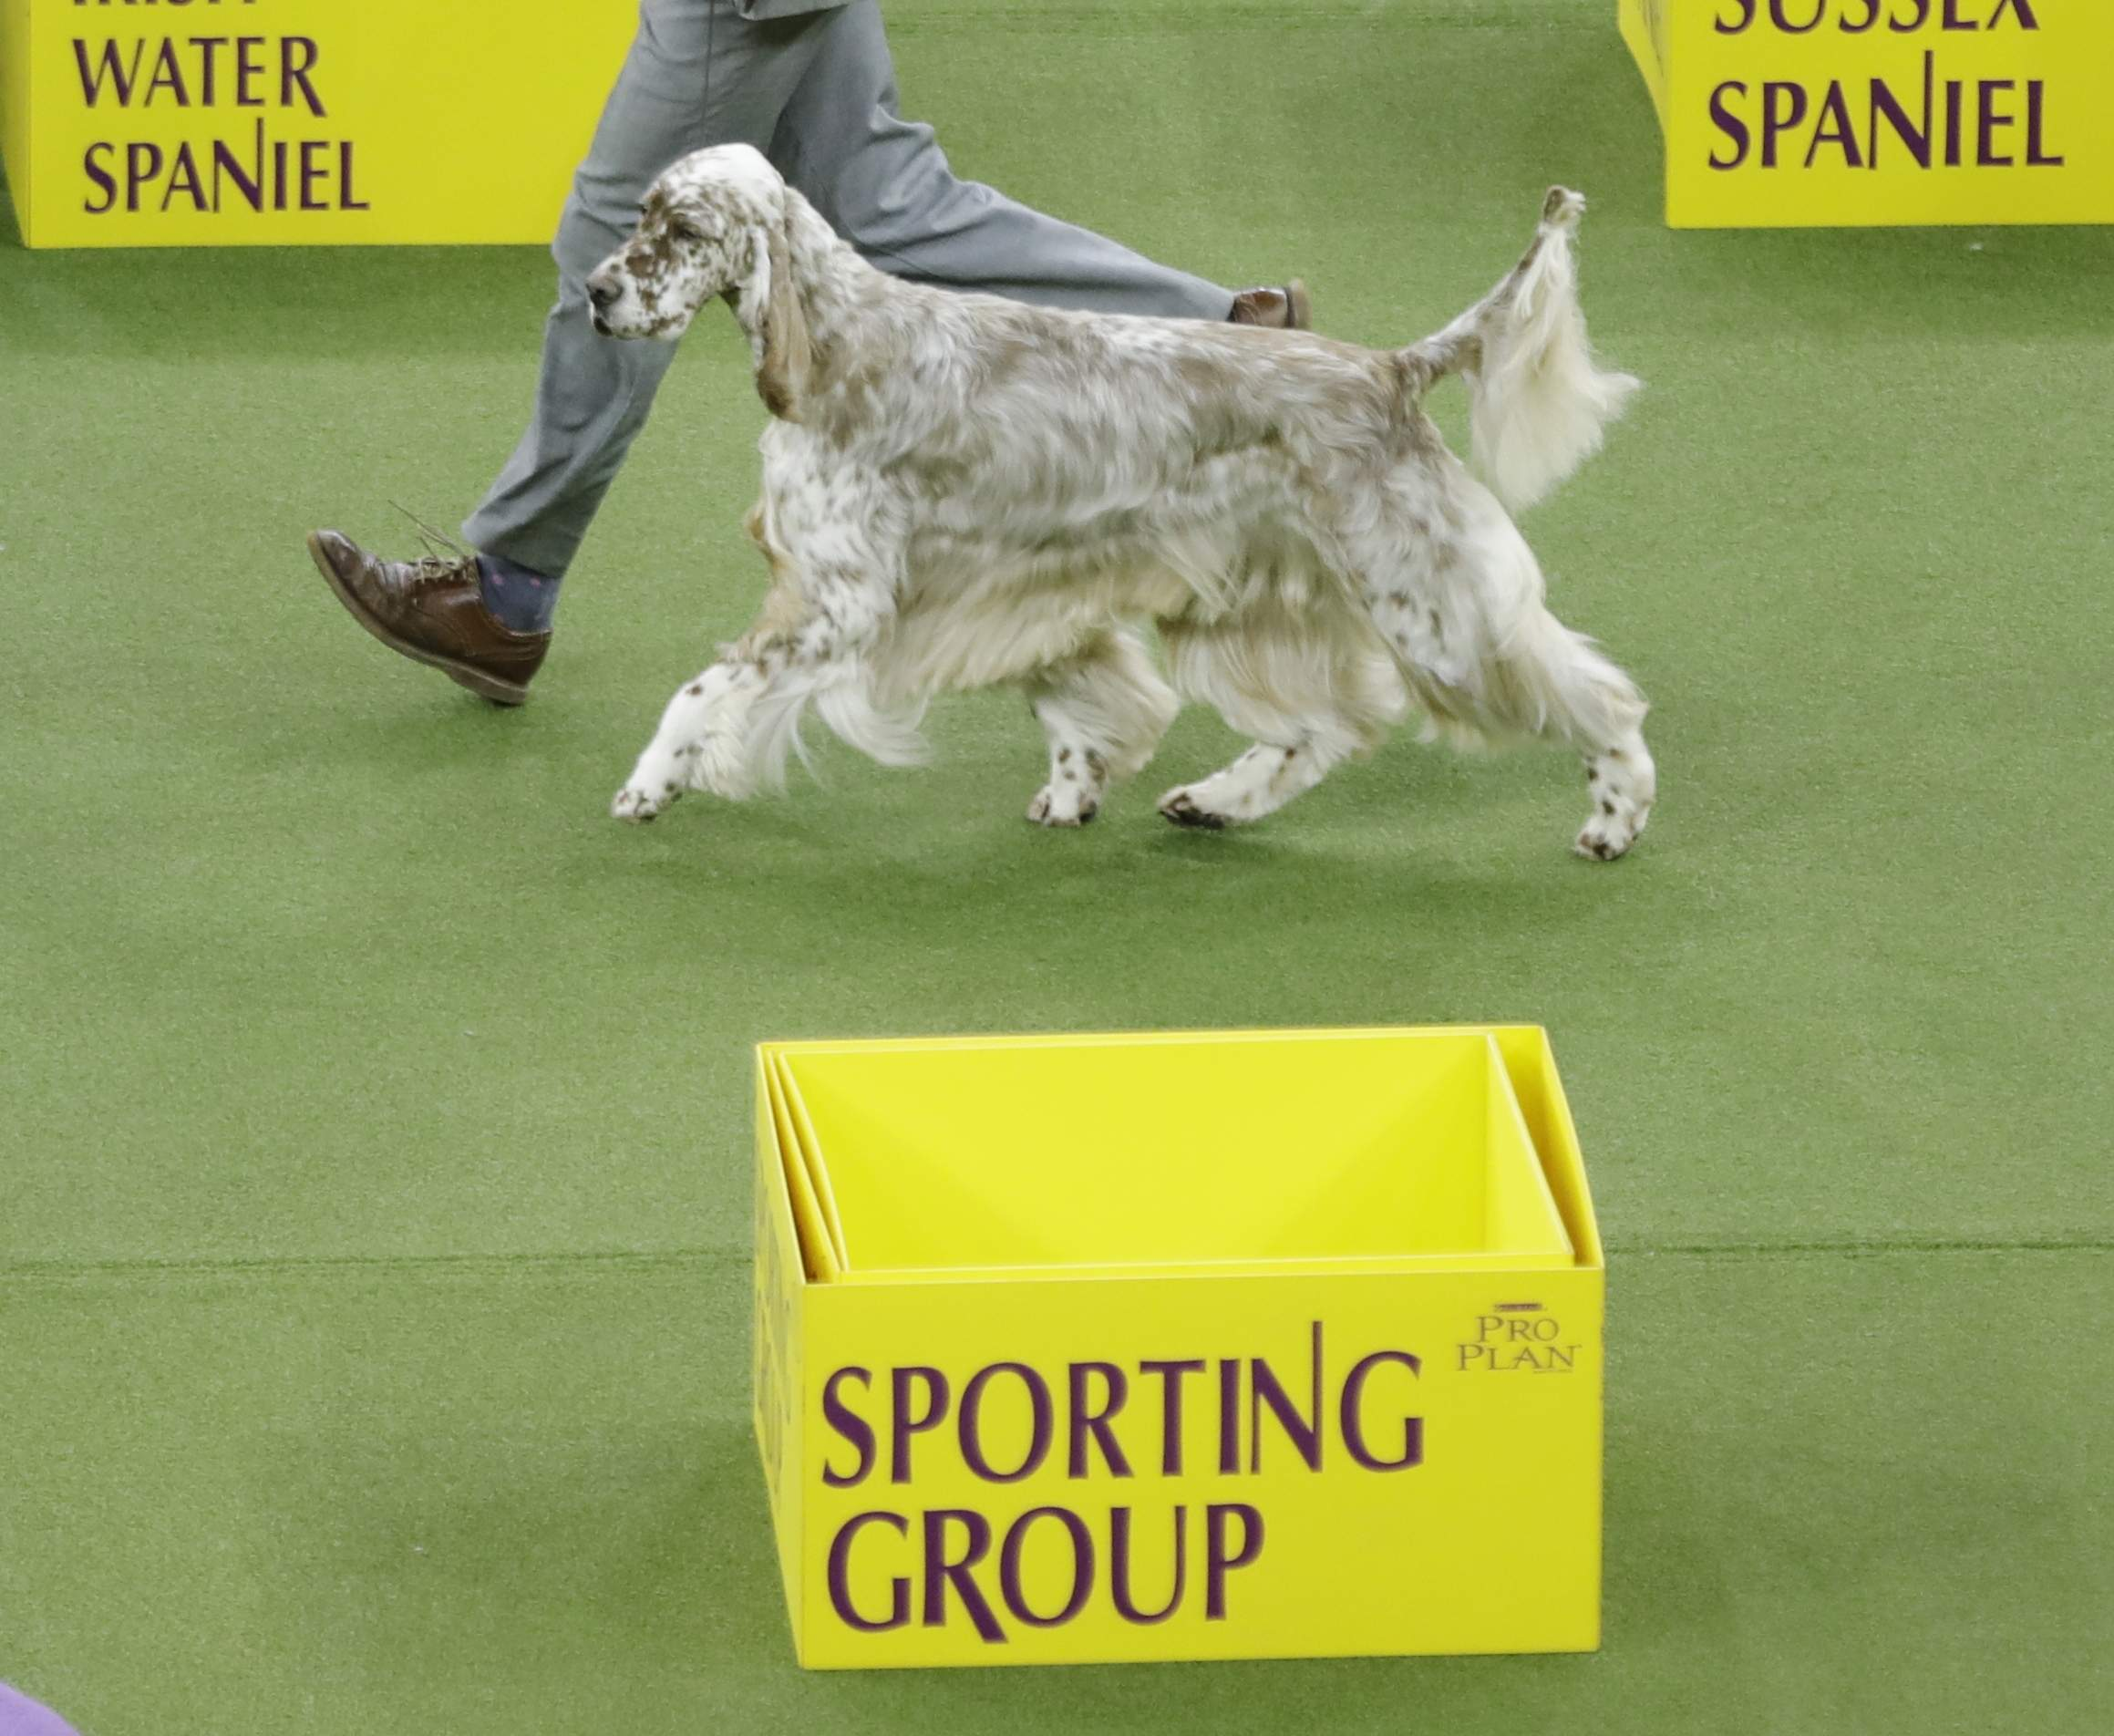 Colt, an English setter, competes with the sporting group during the 141st Westminster Kennel Club Dog Show on Tuesday, Feb. 14, 2017, in New York. THE ASSOCIATED PRESS